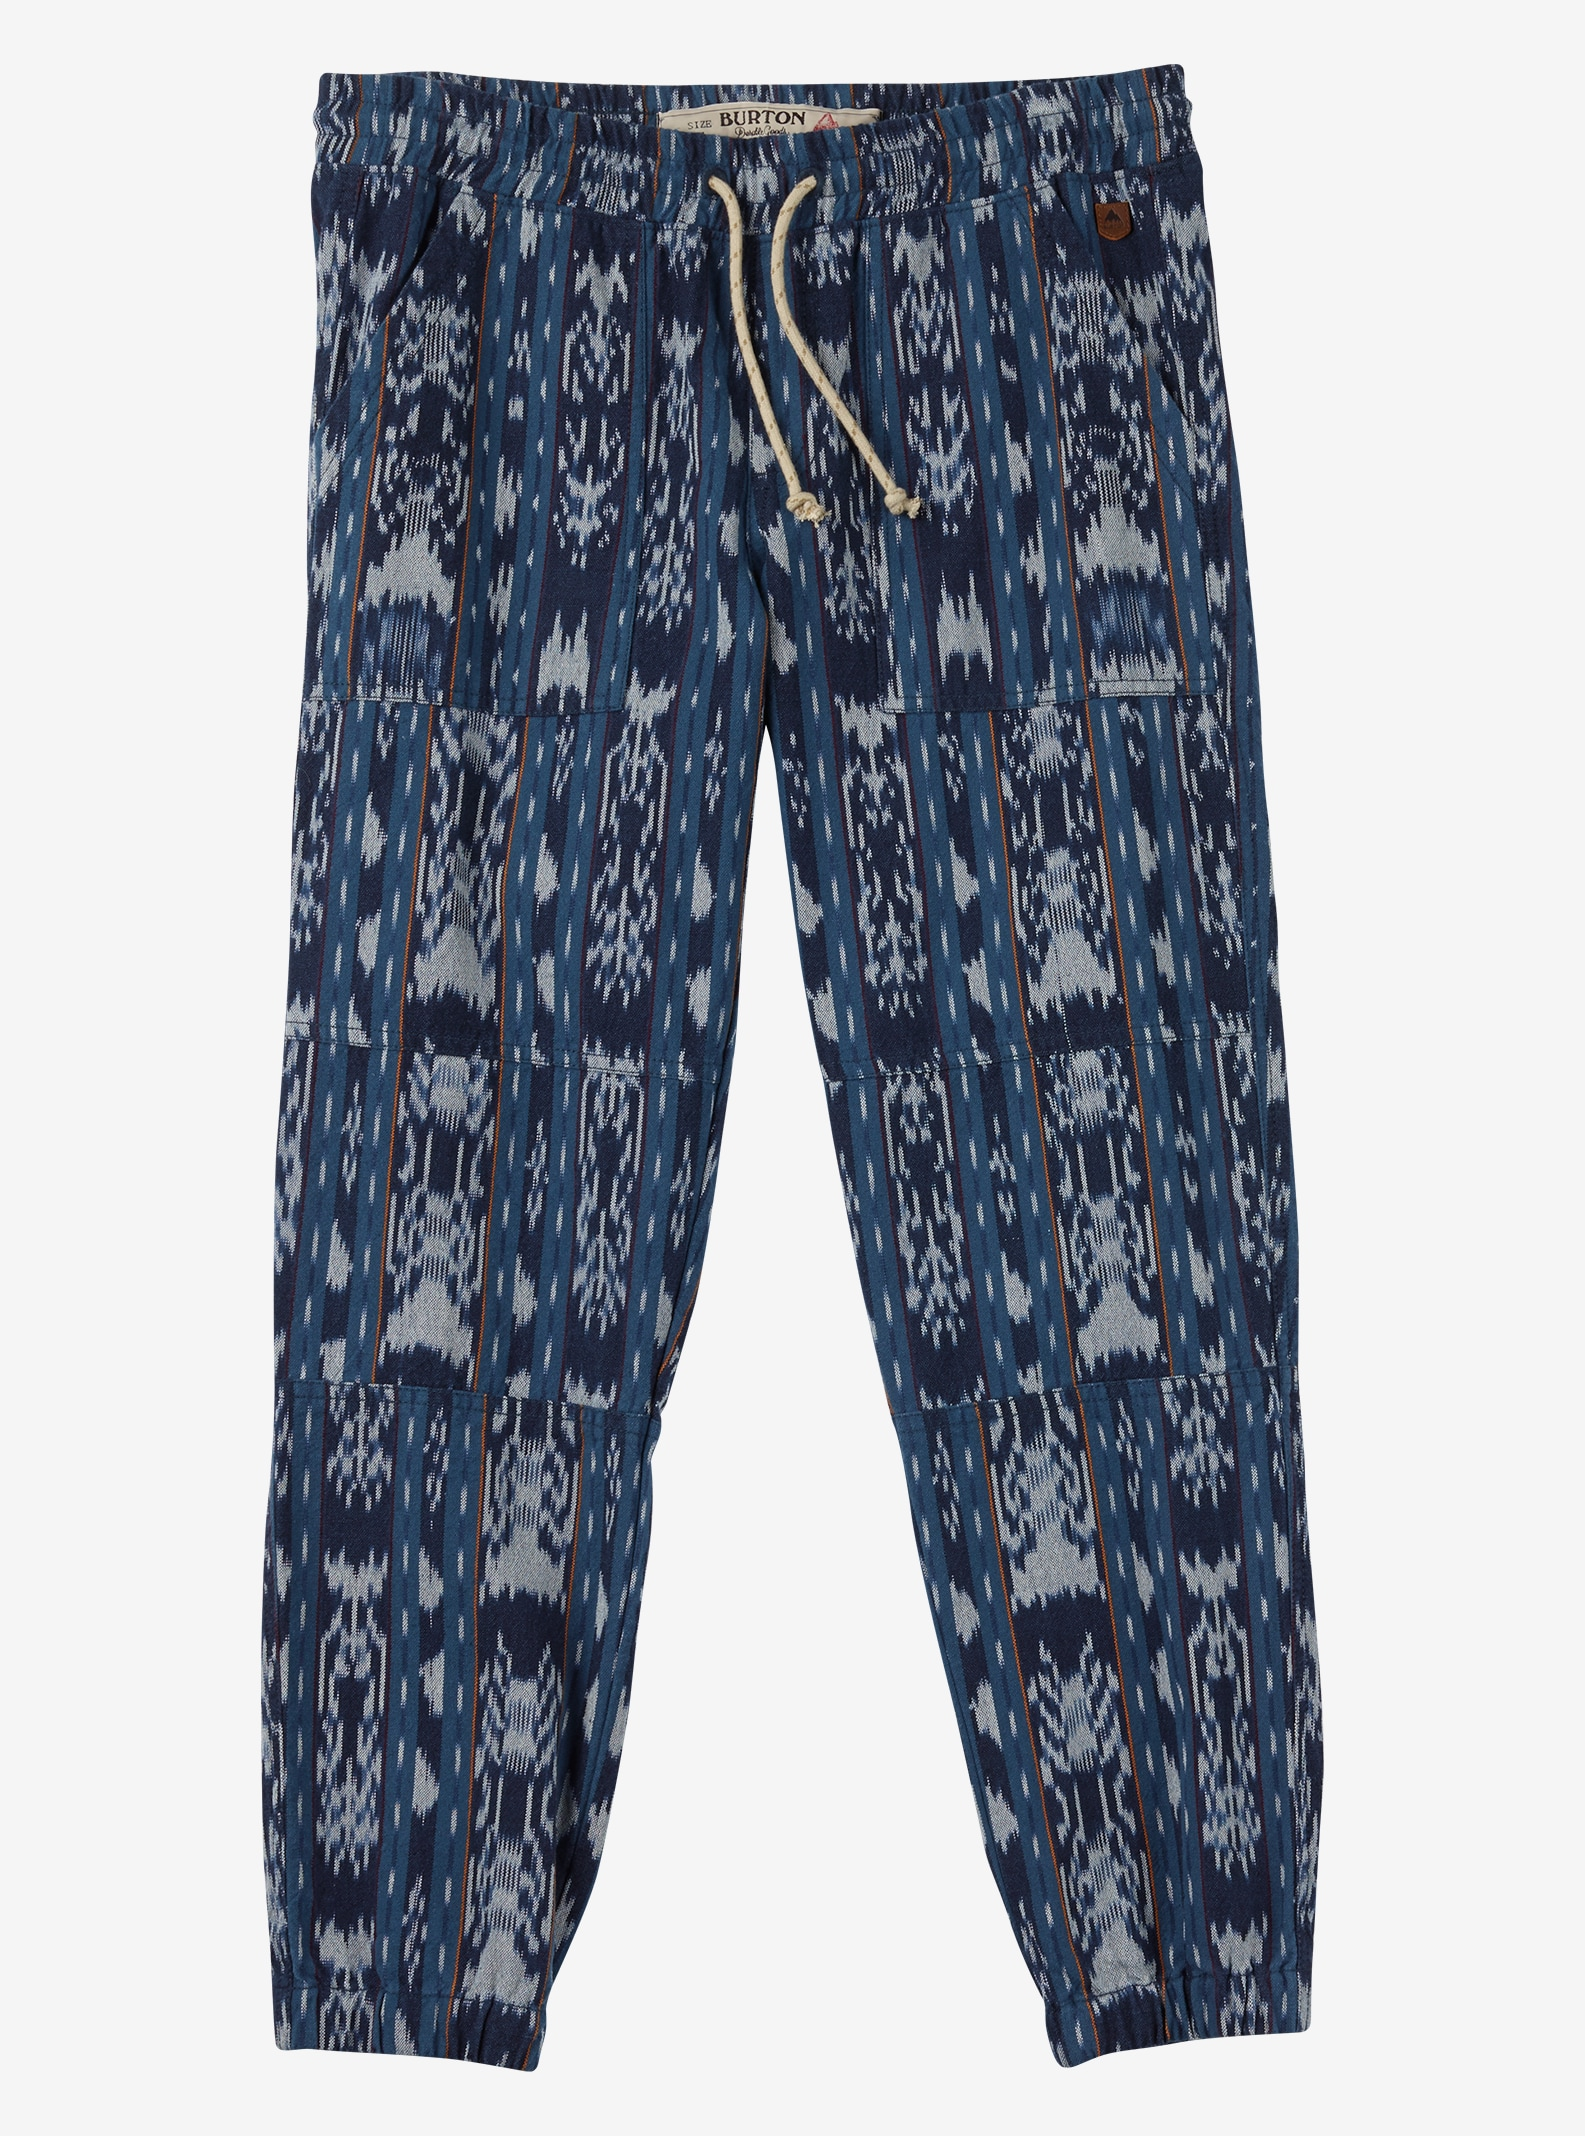 Burton Joy Hose angezeigt in Dark Denim Guatikat